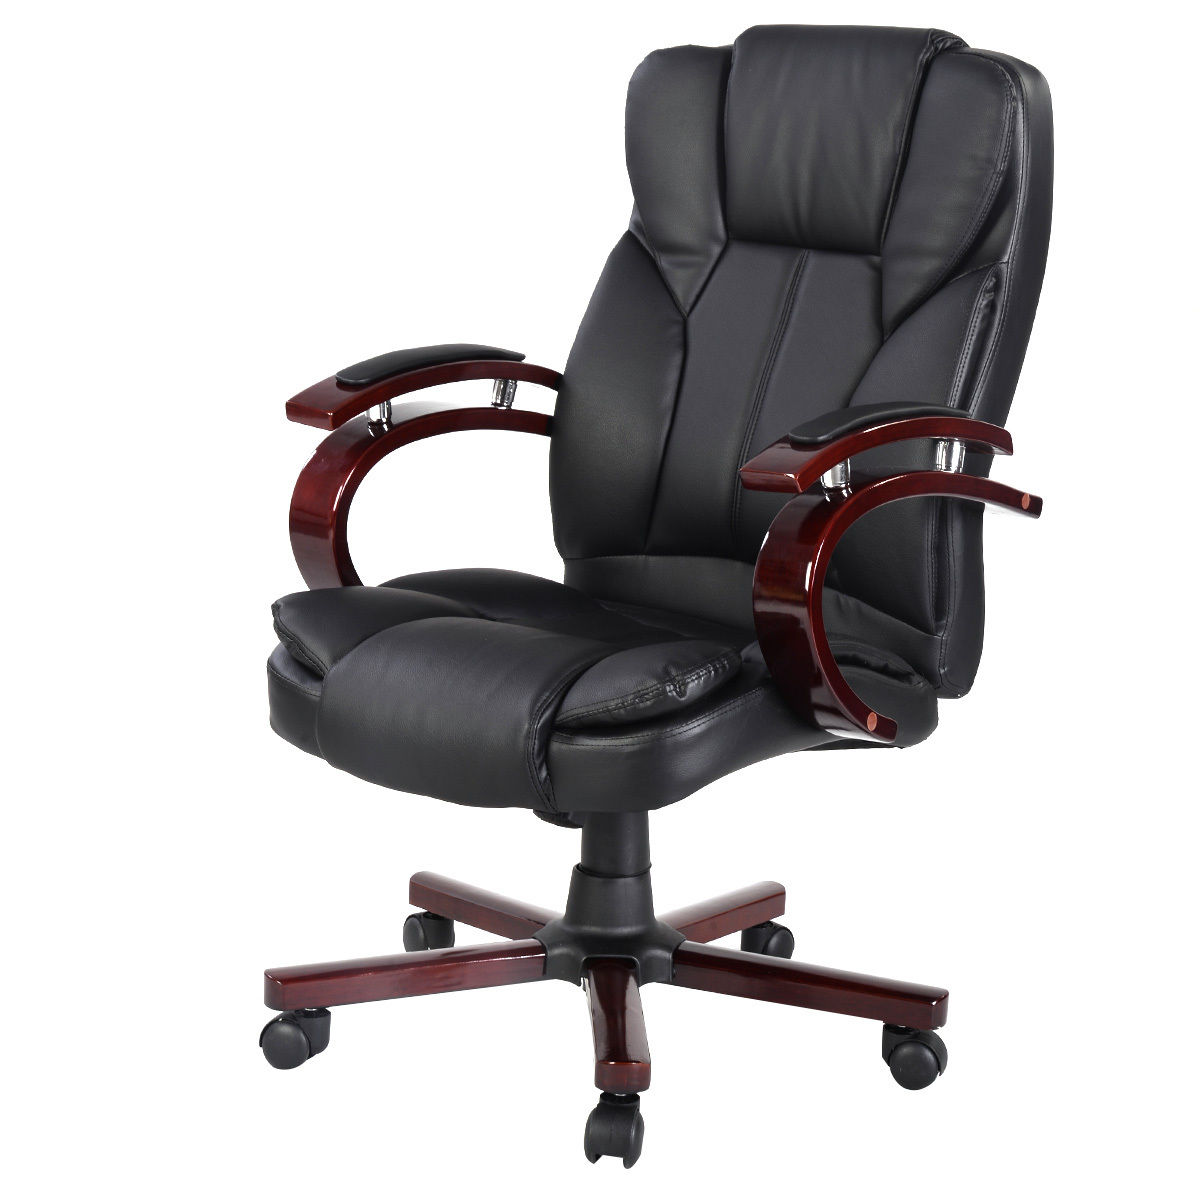 Costway Ergonomic Desk Task Office Chair High Back Executive Computer New Style  sc 1 st  Walmart & Costway Ergonomic Desk Task Office Chair High Back Executive ...